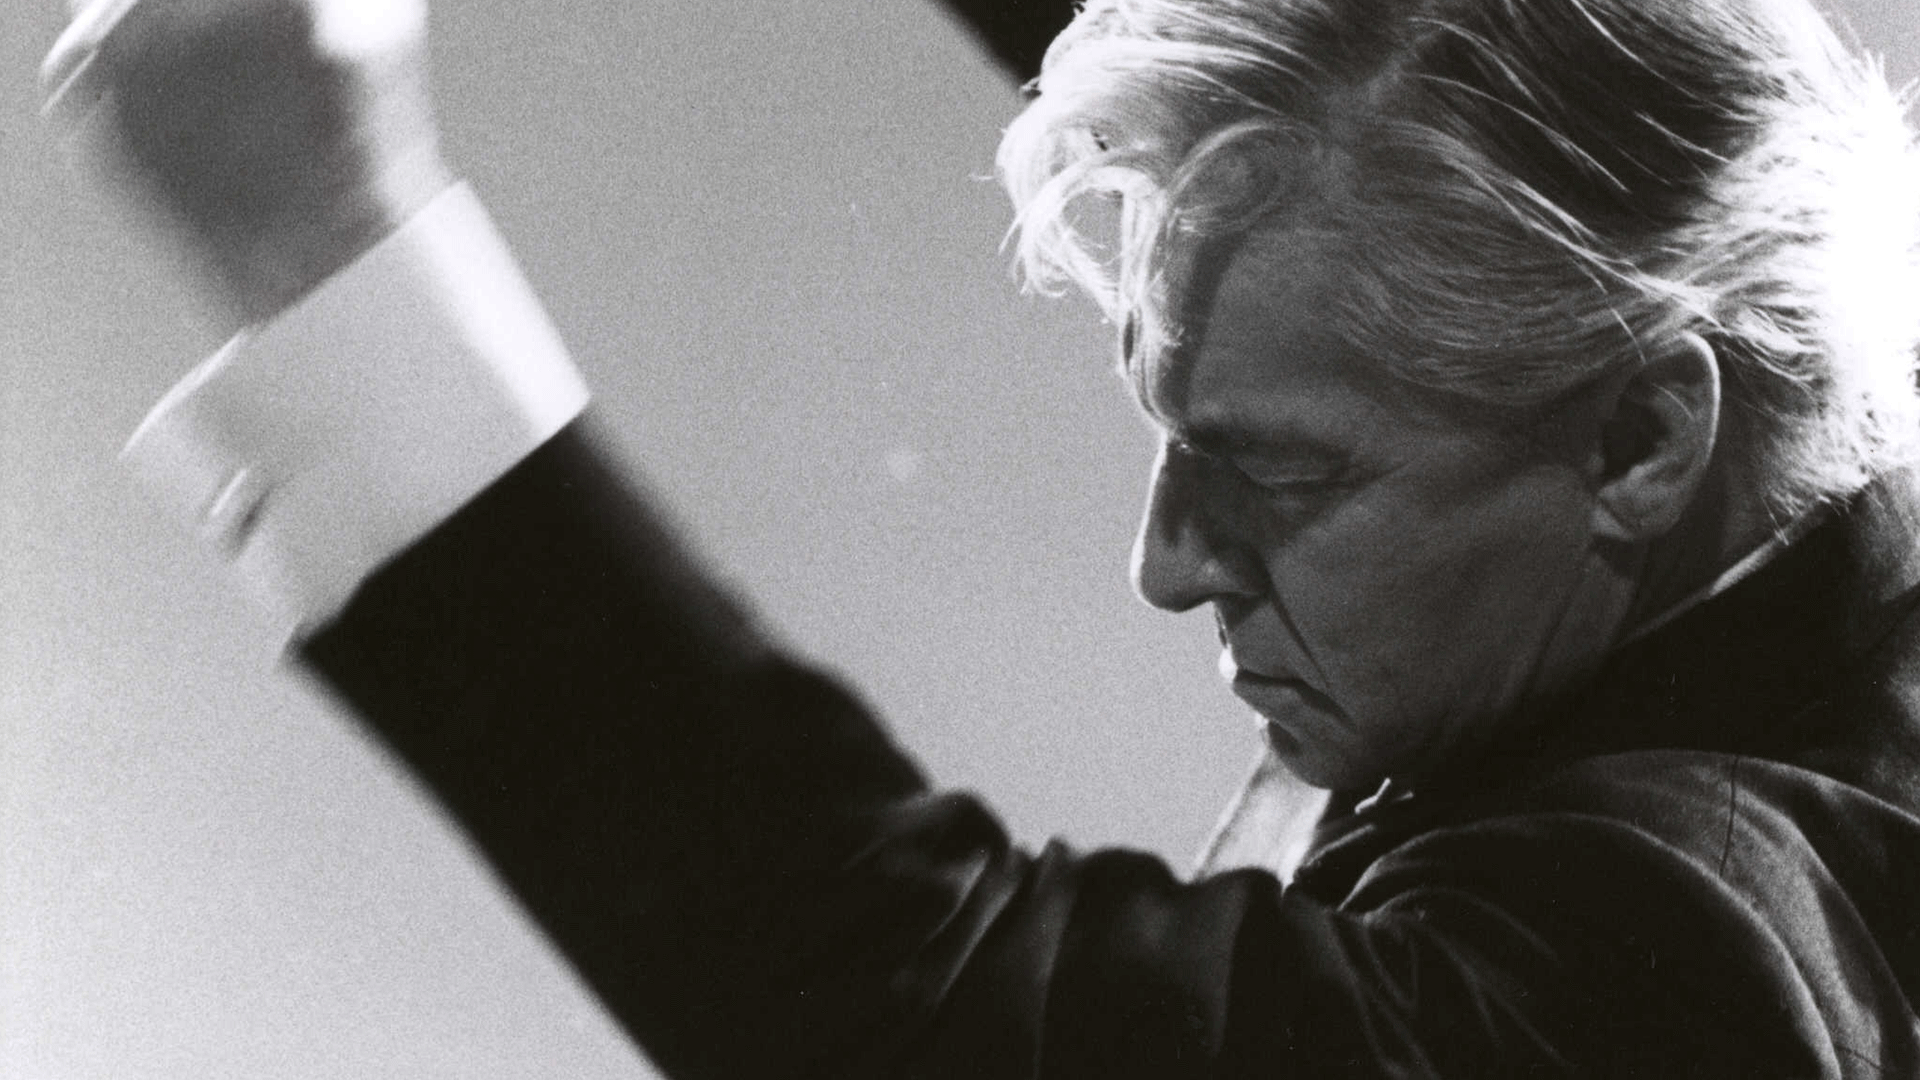 Herbert von Karajan conducts Brahms' A German Requiem